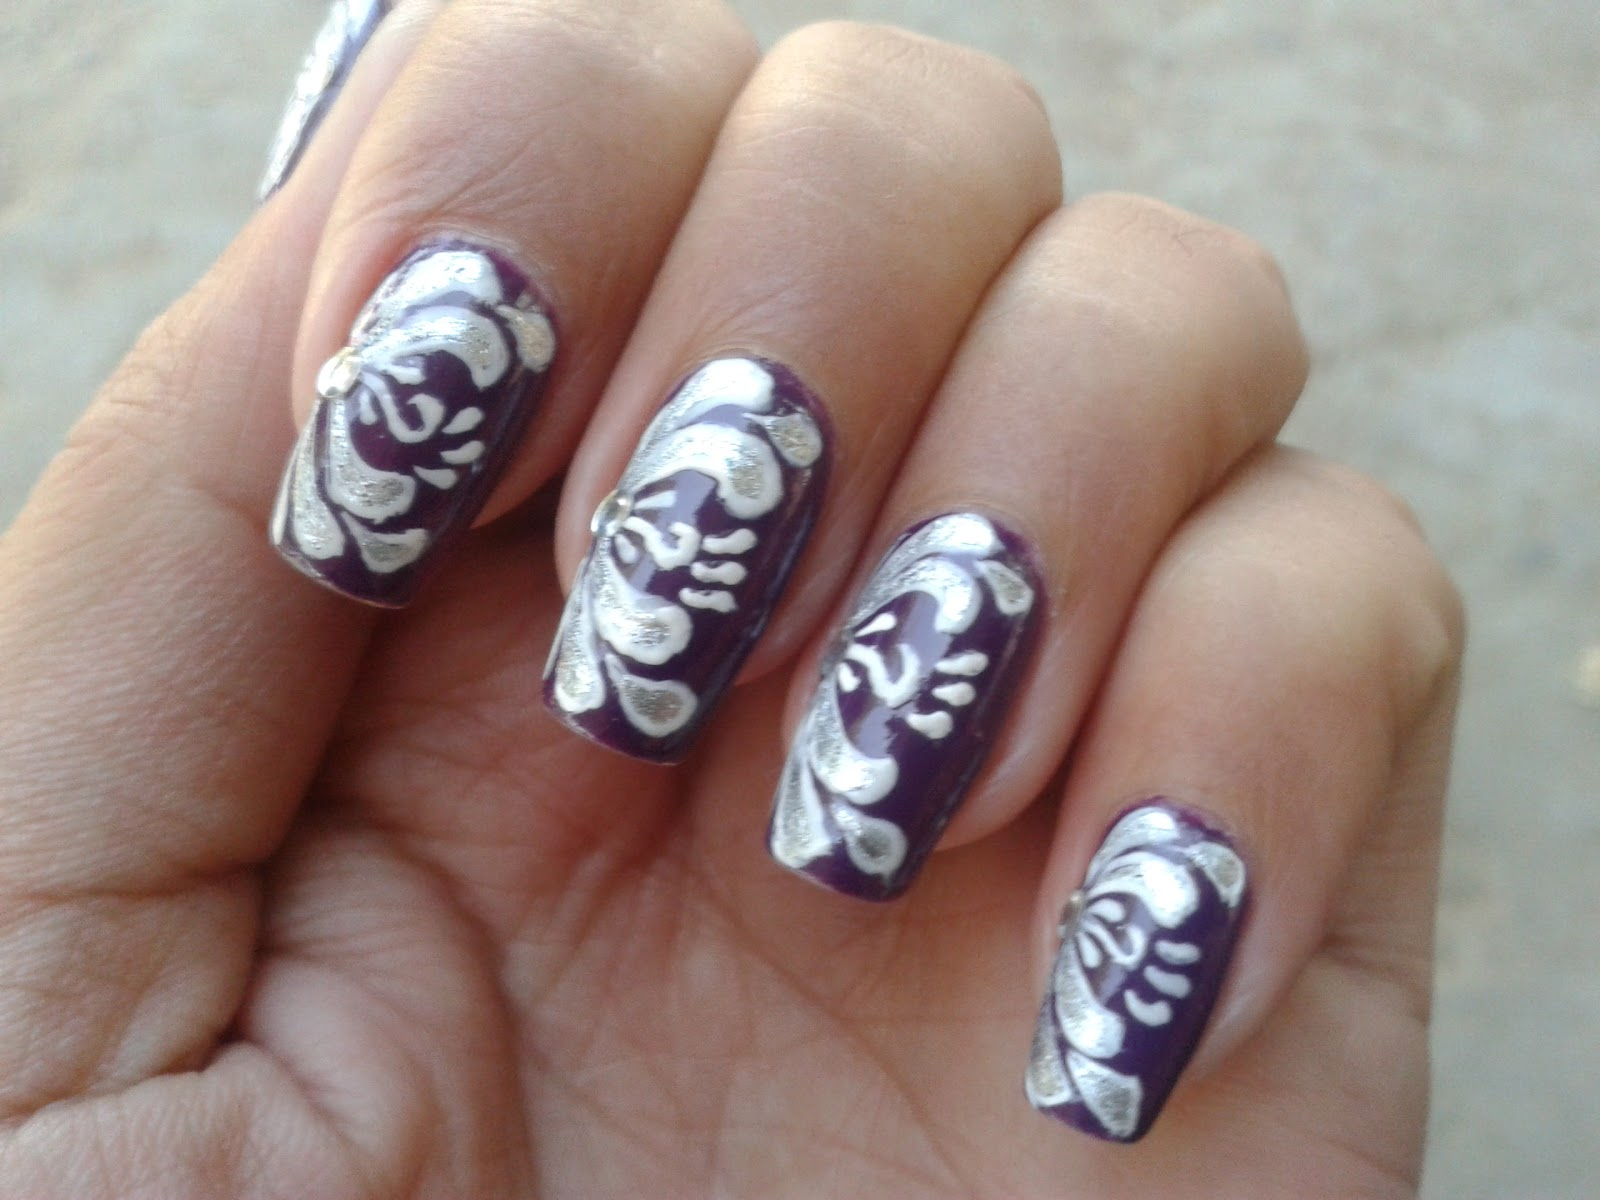 Beautiful Nail Art Design - Creative Nail Designs and ...